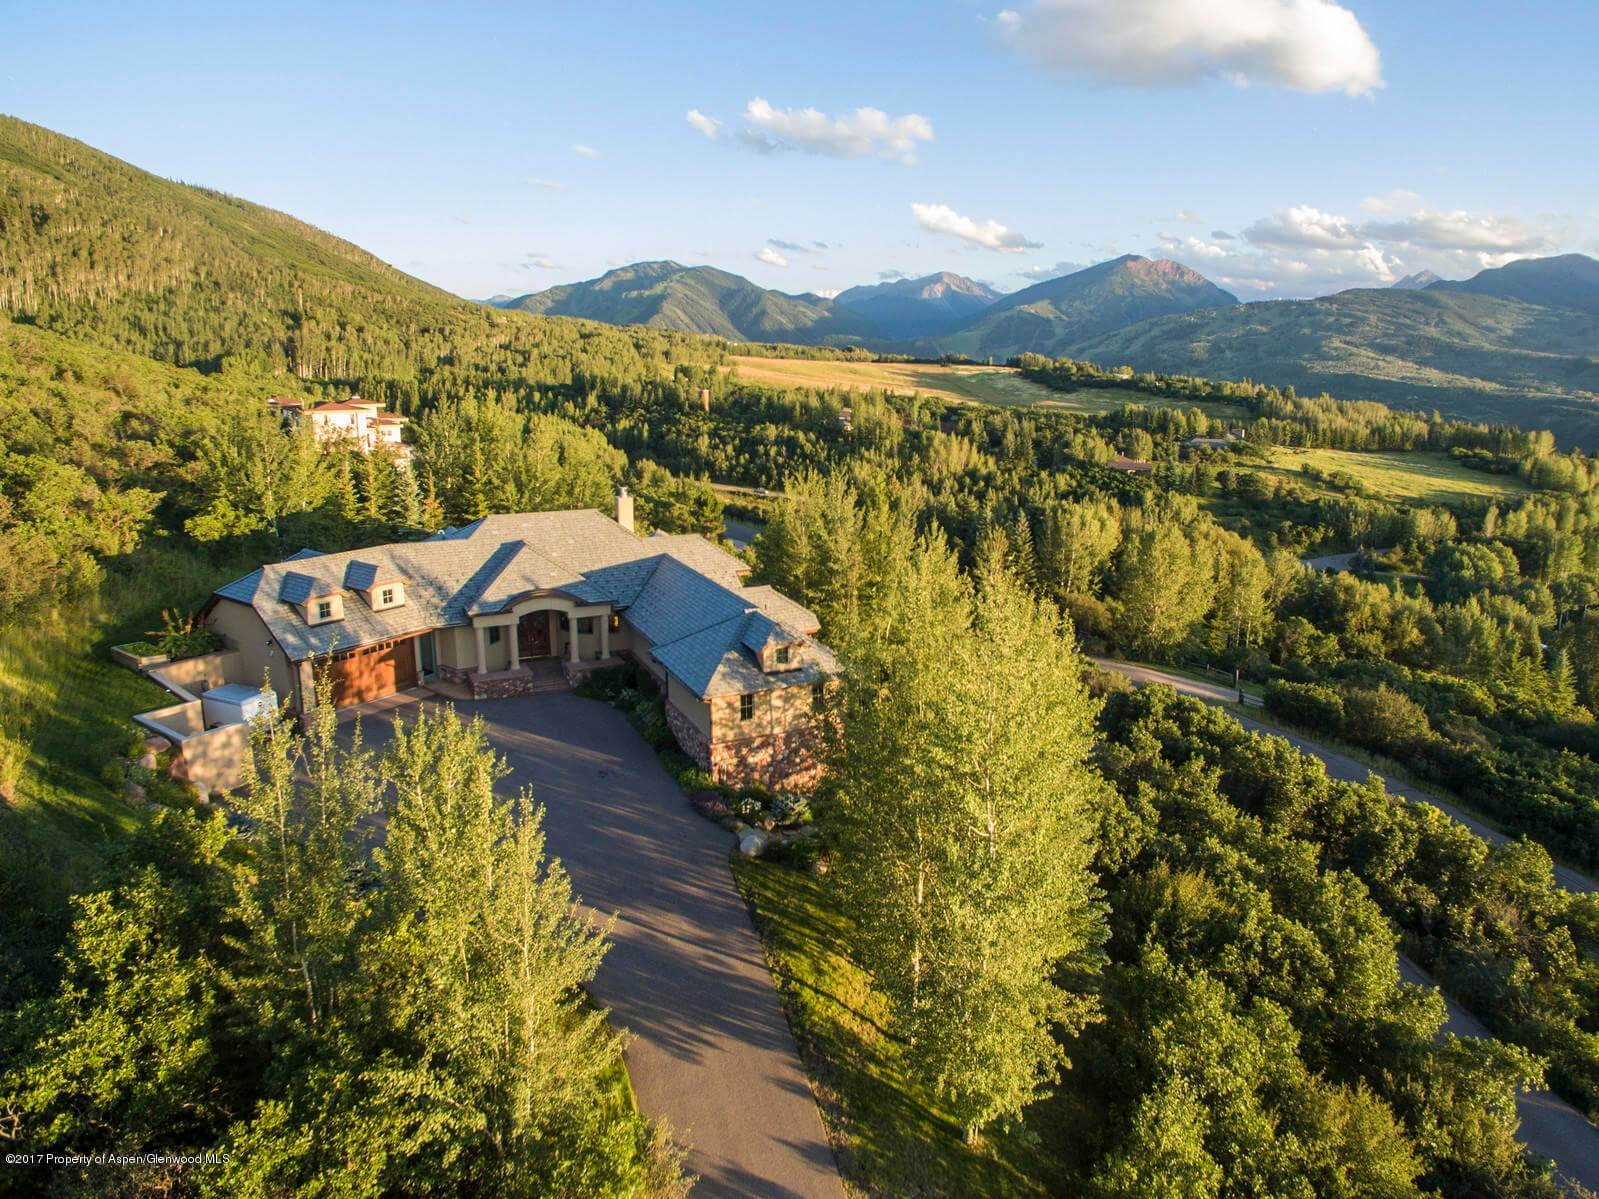 2006 Built Starwood Home in Aspen's Only Gated Community Closes at $4.4M/$765 Sq Ft Image